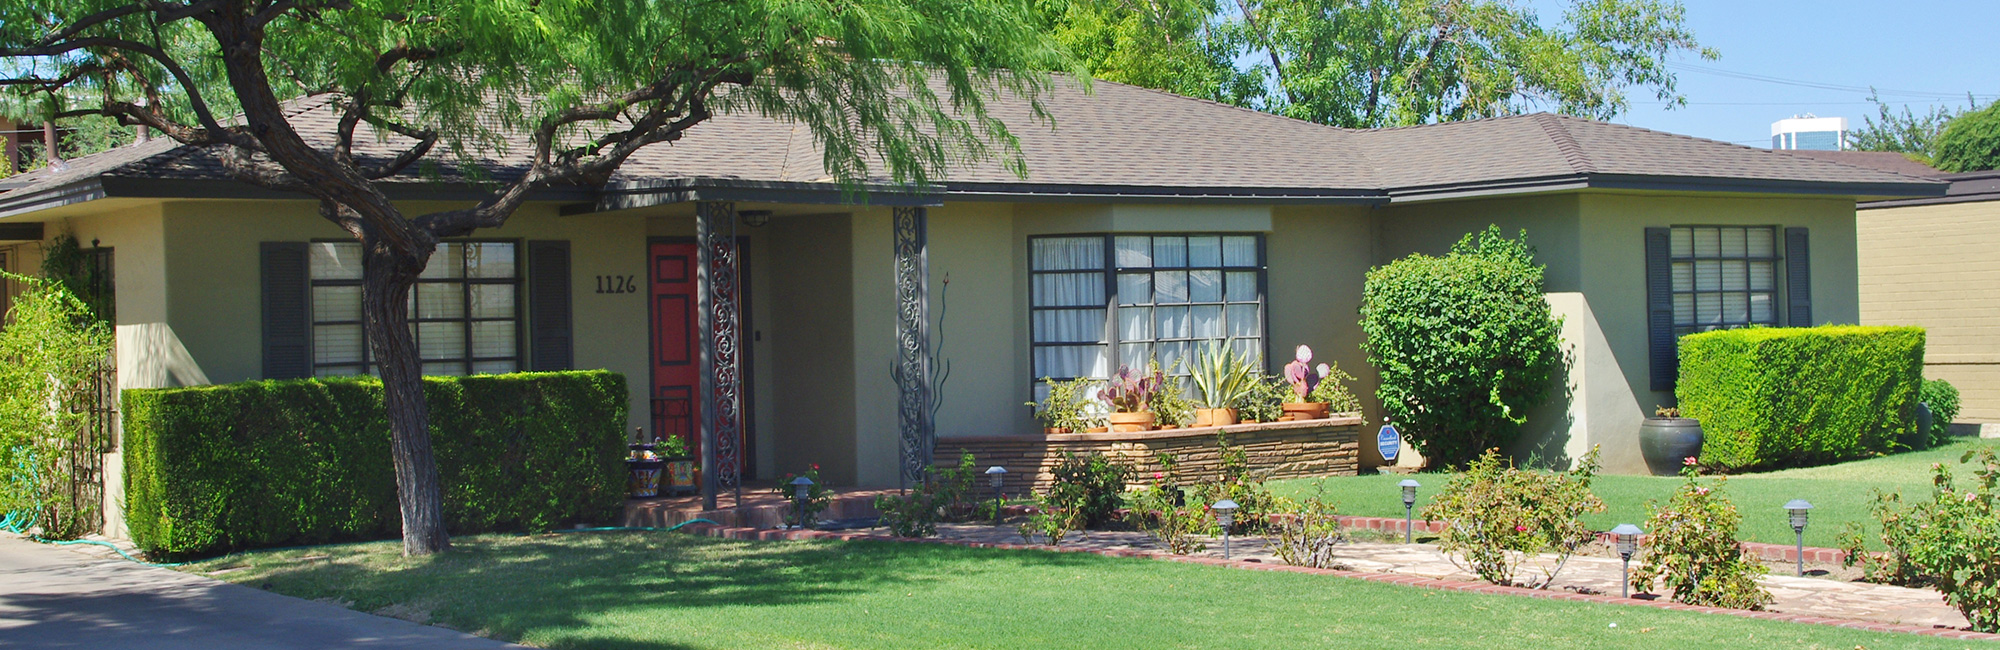 Encanto Manor Historic District of Phoenix